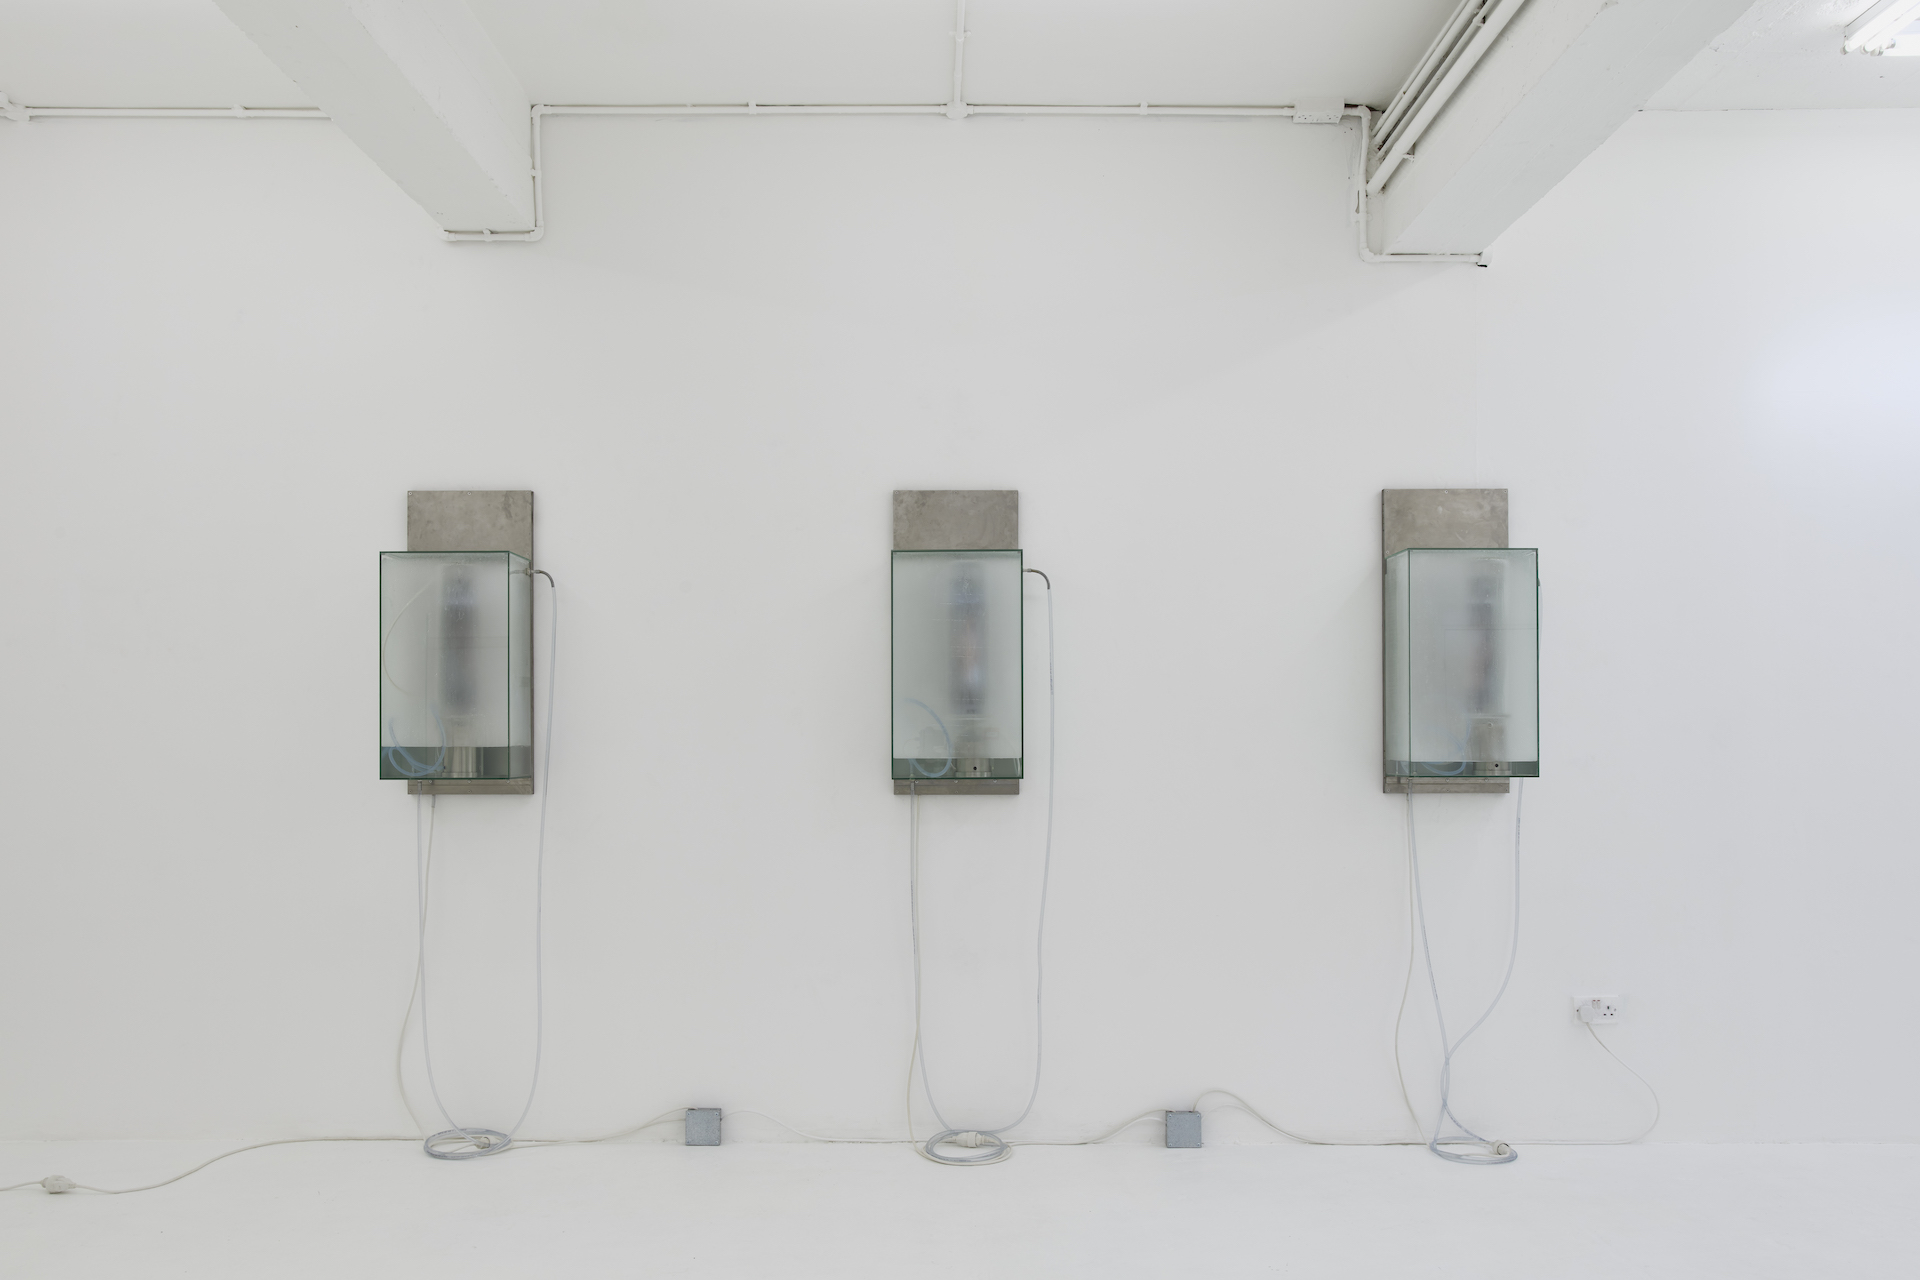 Installation view: HUGO SERVANIN: REGIME SELECTING DEVICES (ENVIRONNEMENT FOULE #6), Nicoletti Contemporary, 08.05.21 - 07.06.21, Courtesy the artist and NıCOLETTı, London. Photographer: Theo Christelis